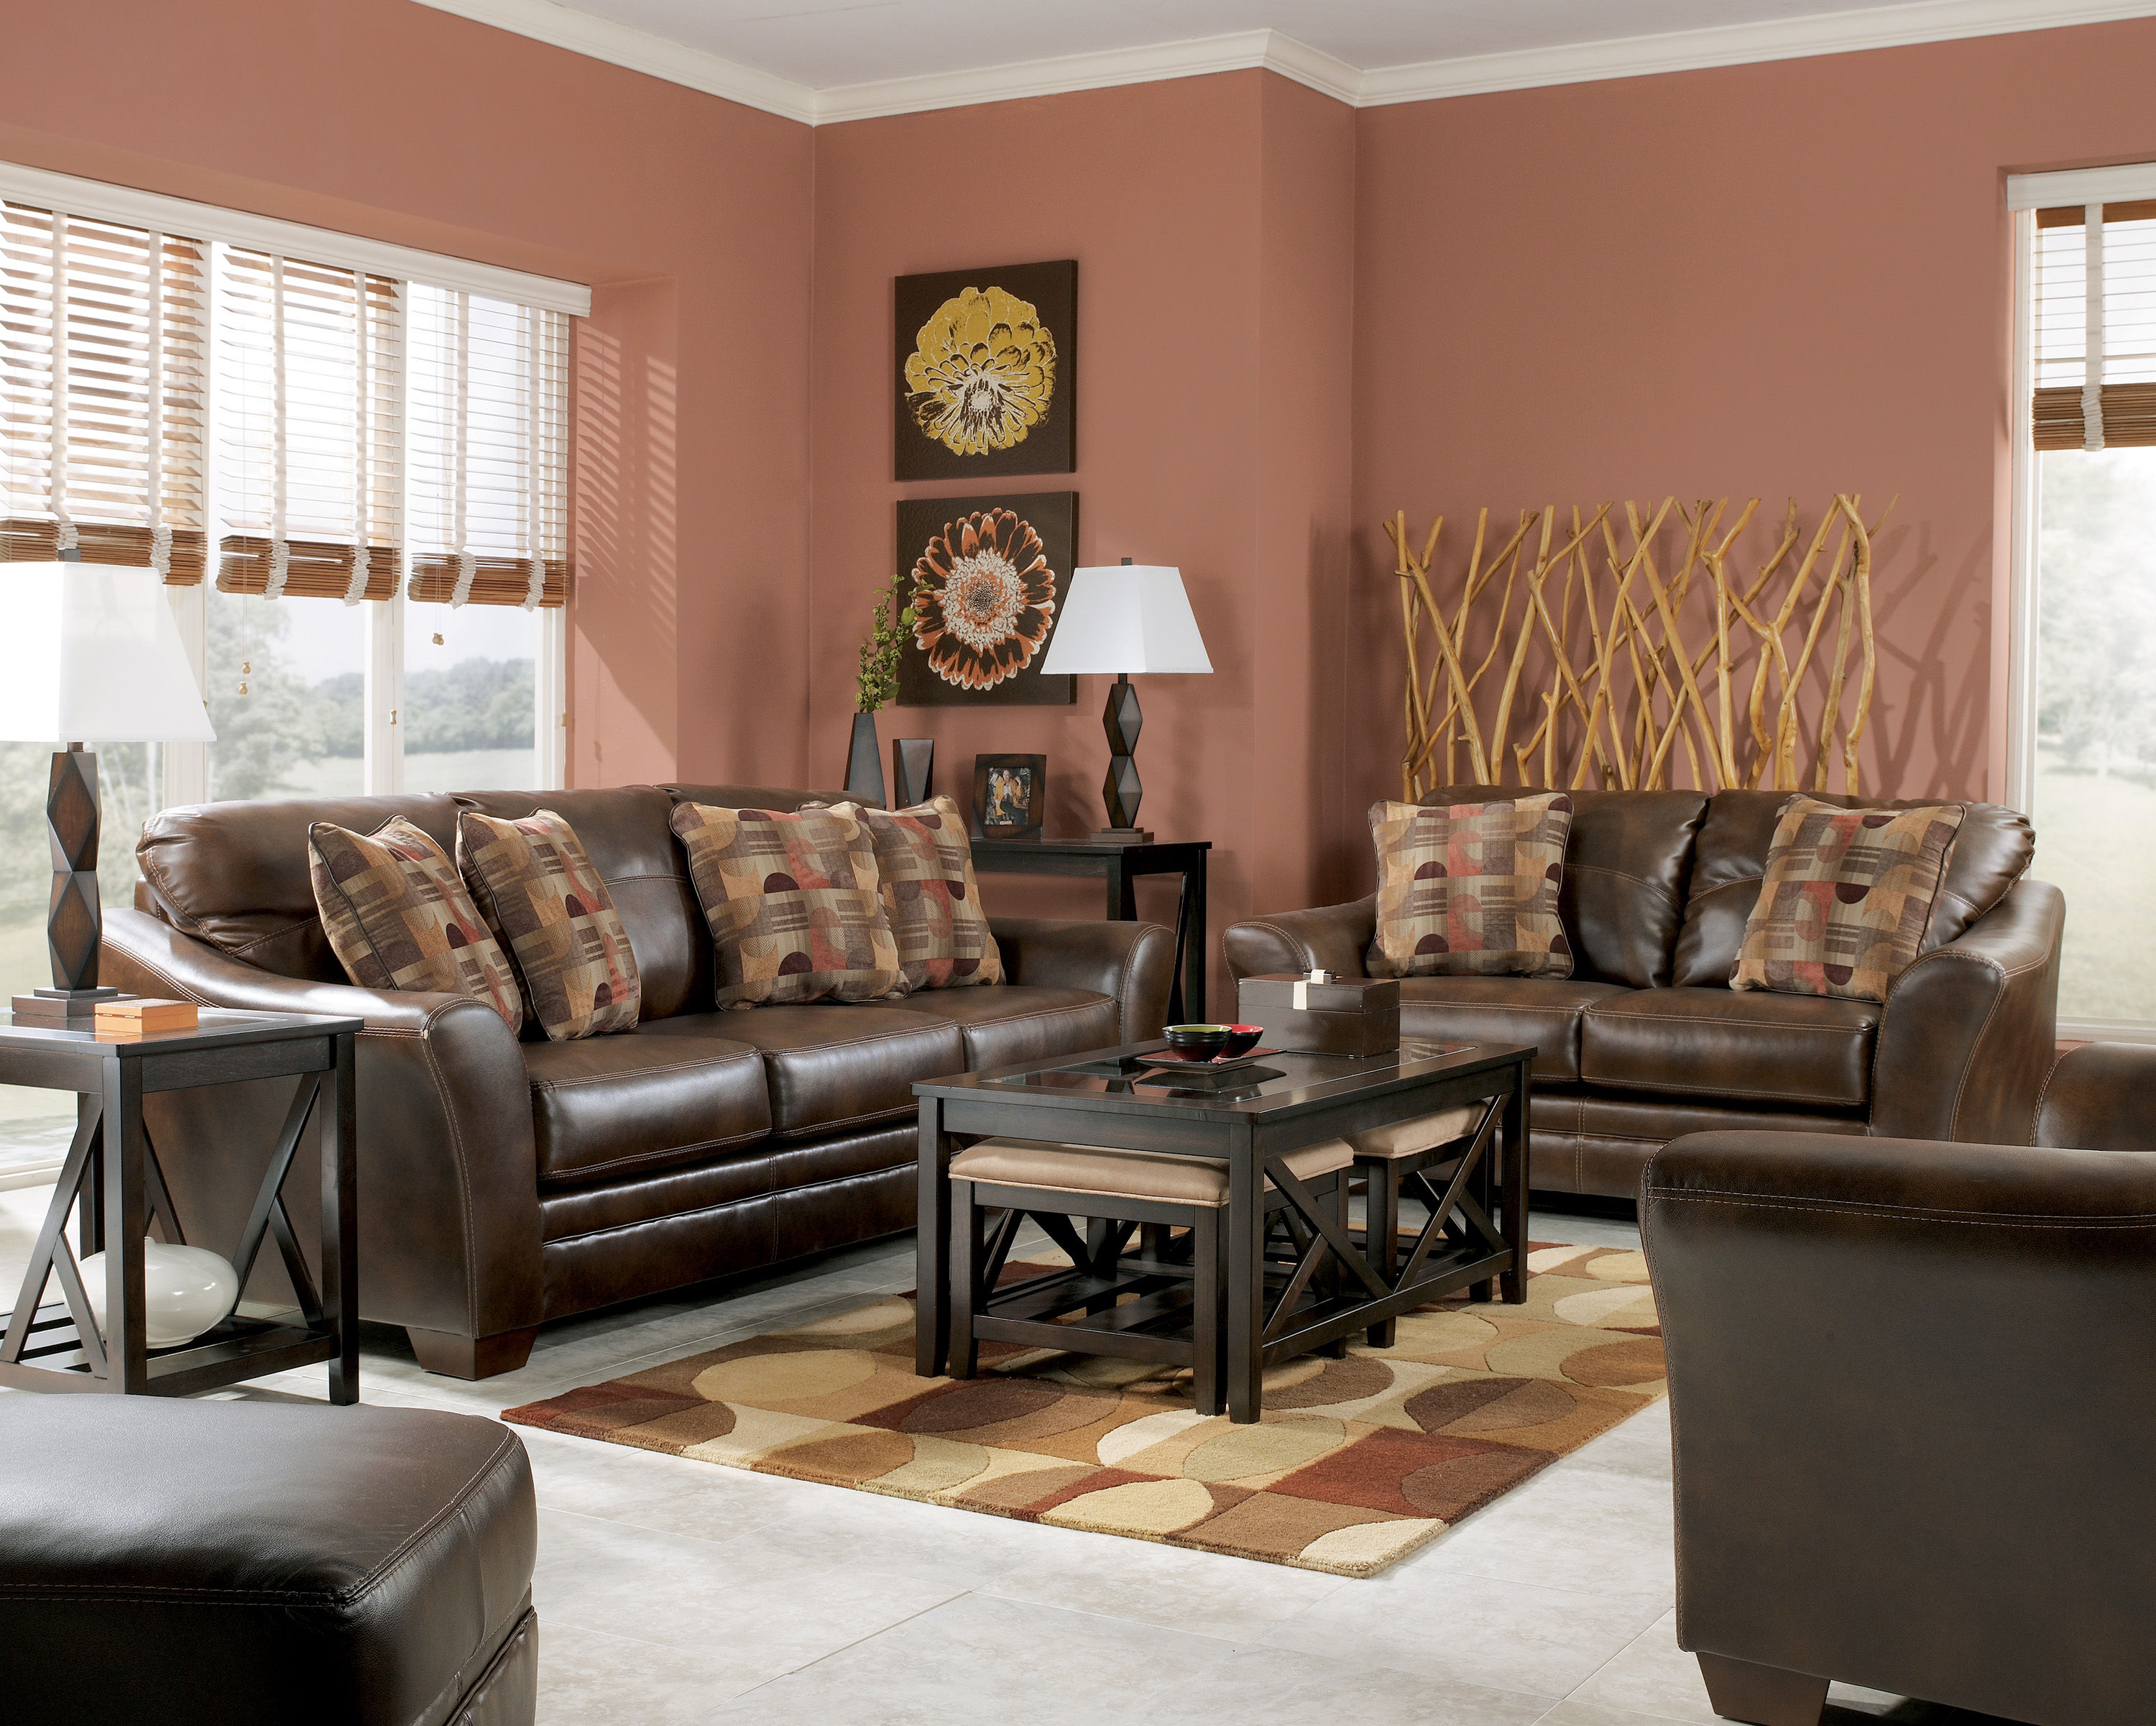 Del rio durablend sedona living room set the classy for Best living room set deals